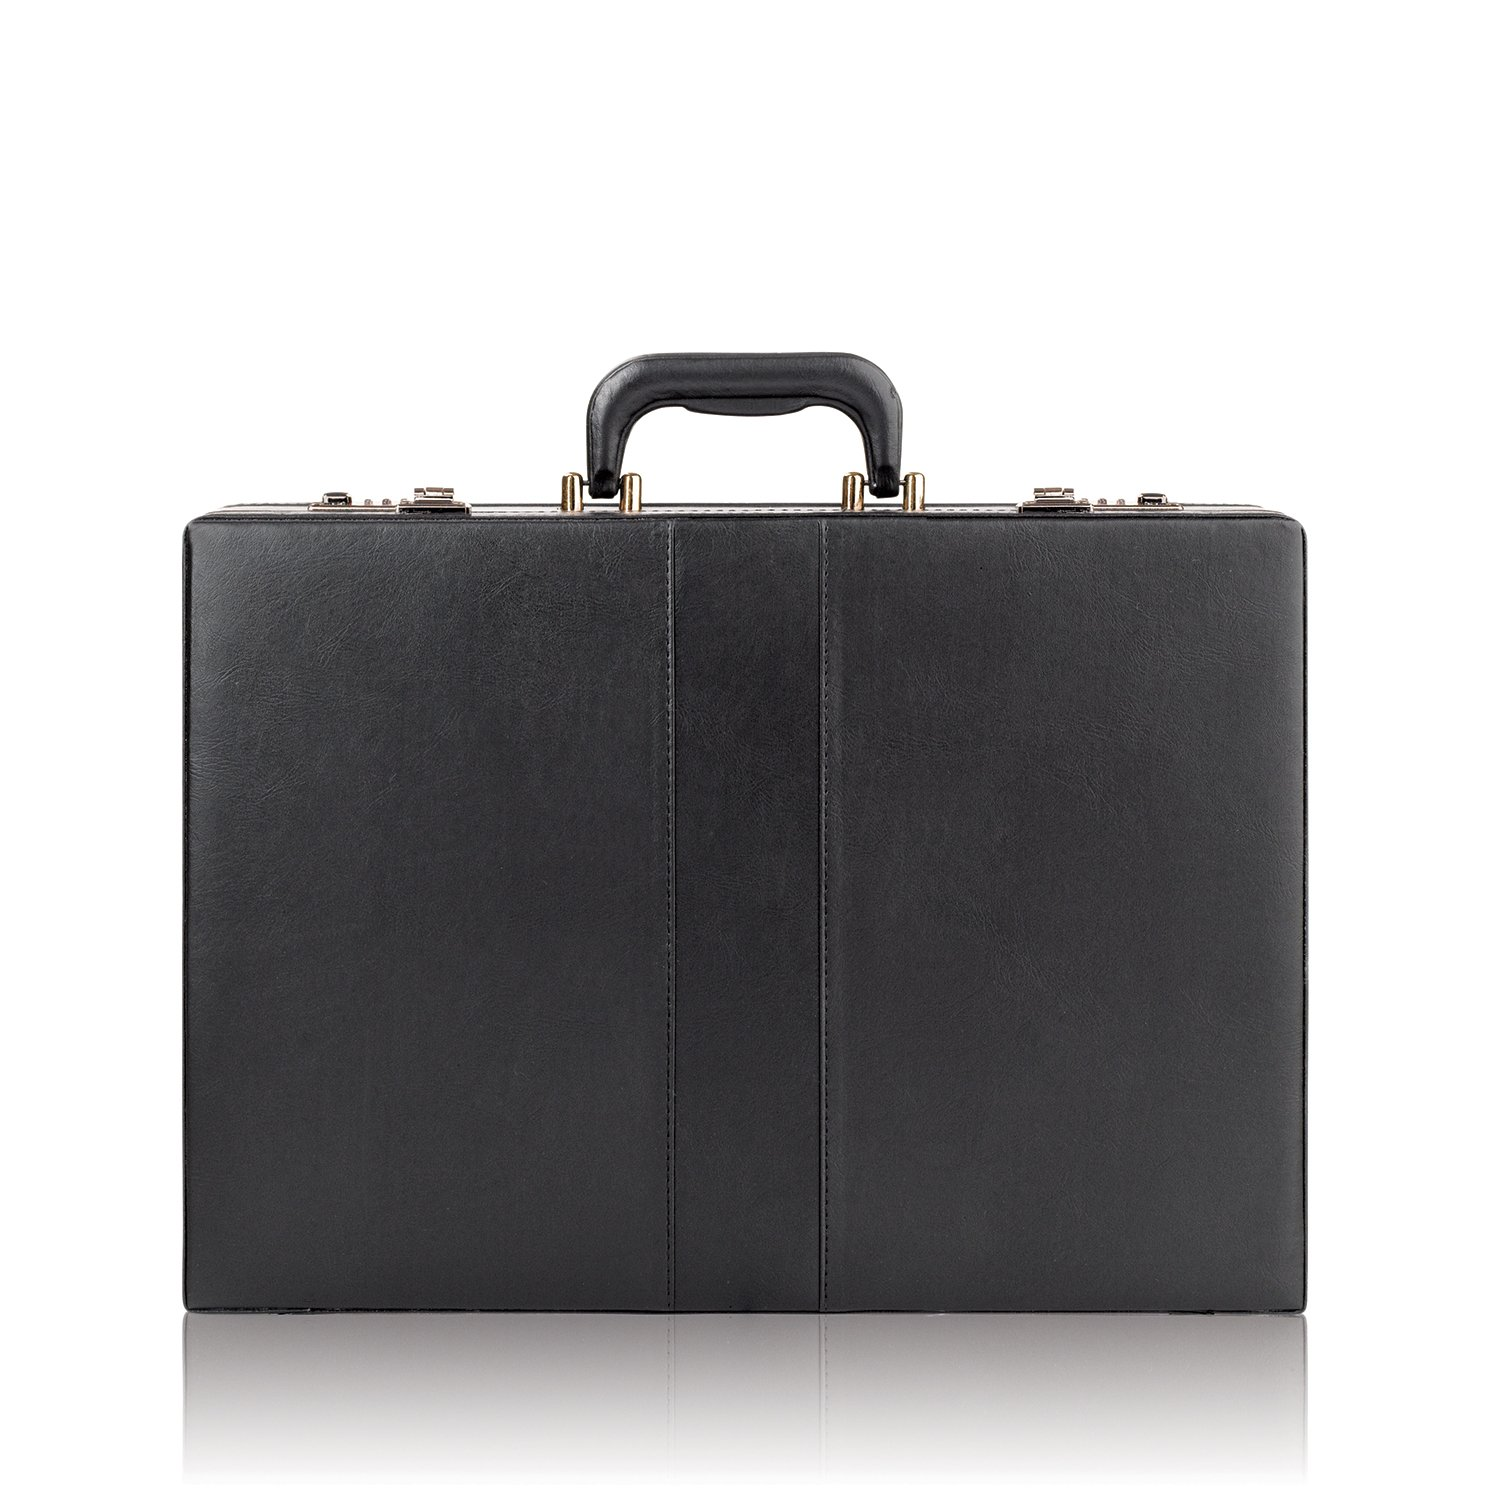 Solo Premium Leather-like Attaché, Hard-sided with Combination Locks, Black, K85 K85-4U4